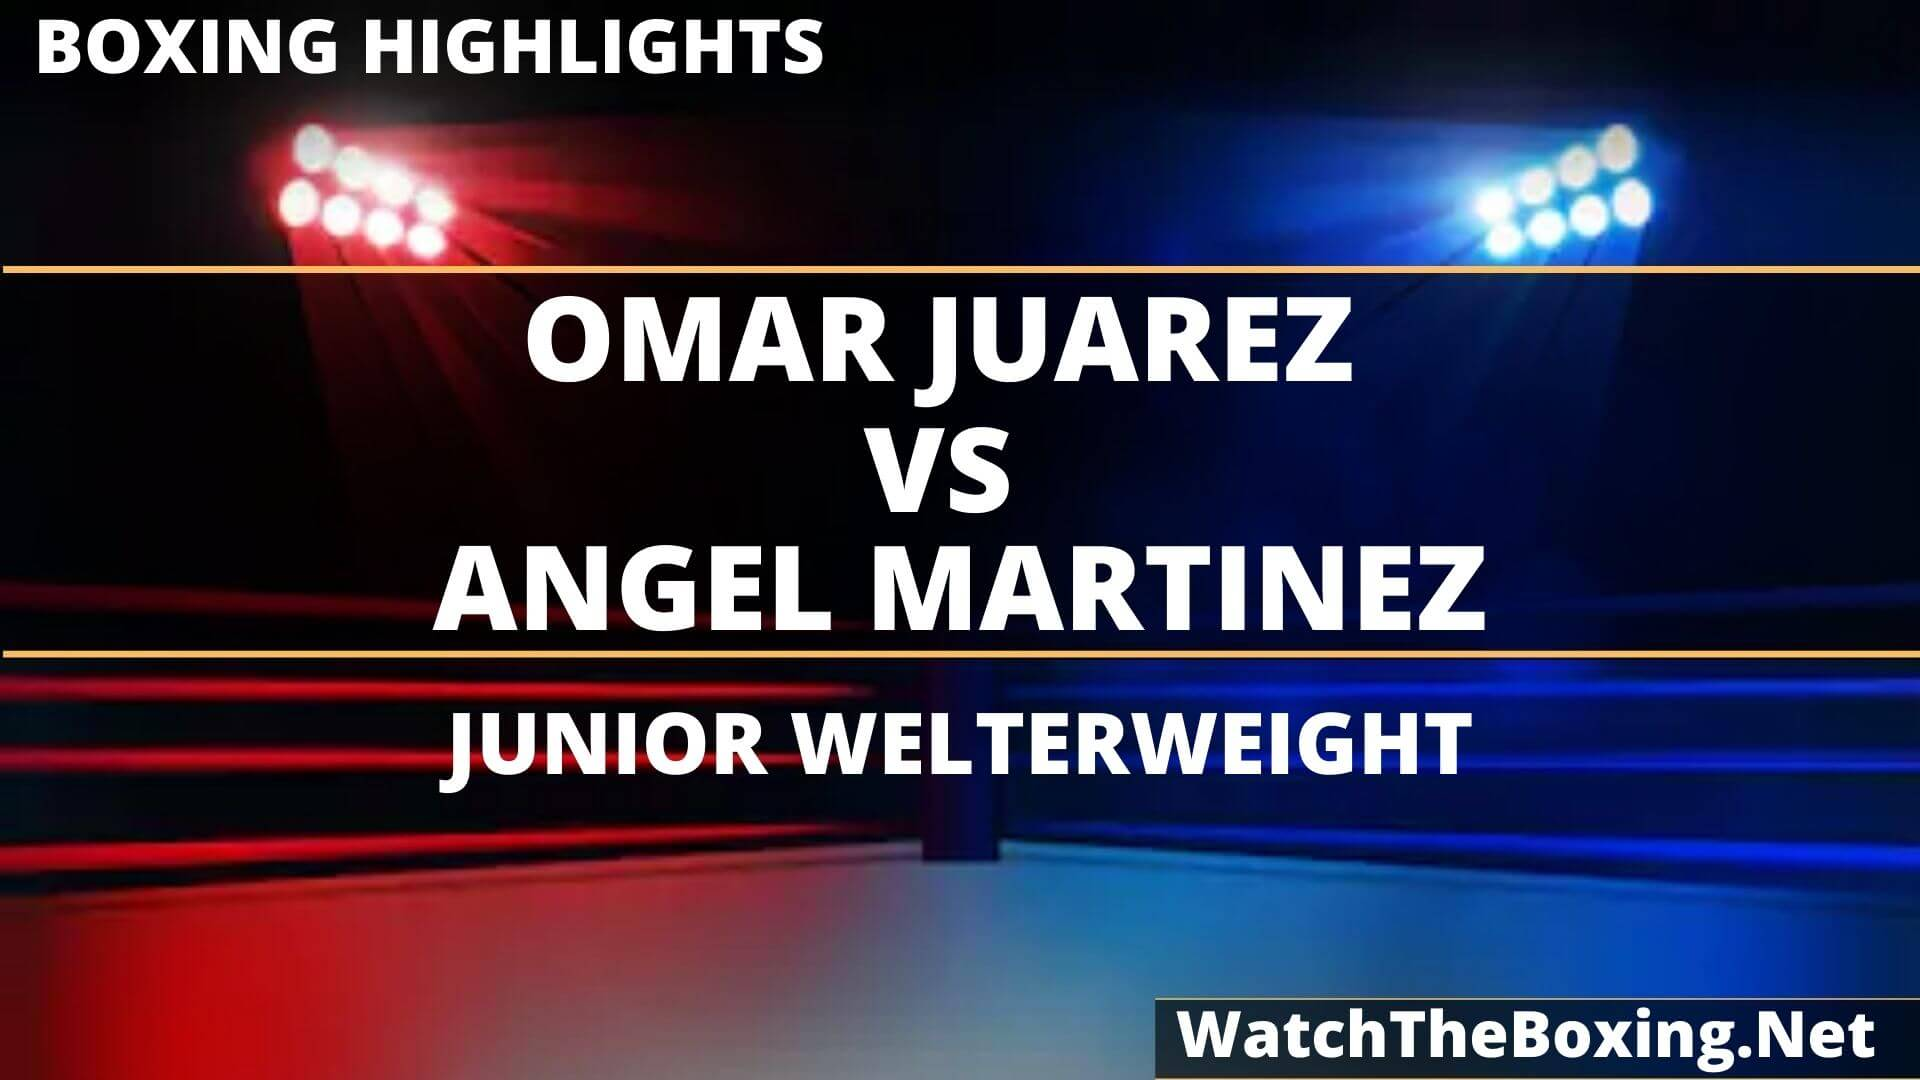 Omar Juarez Vs Angel Martinez Highlights 2020